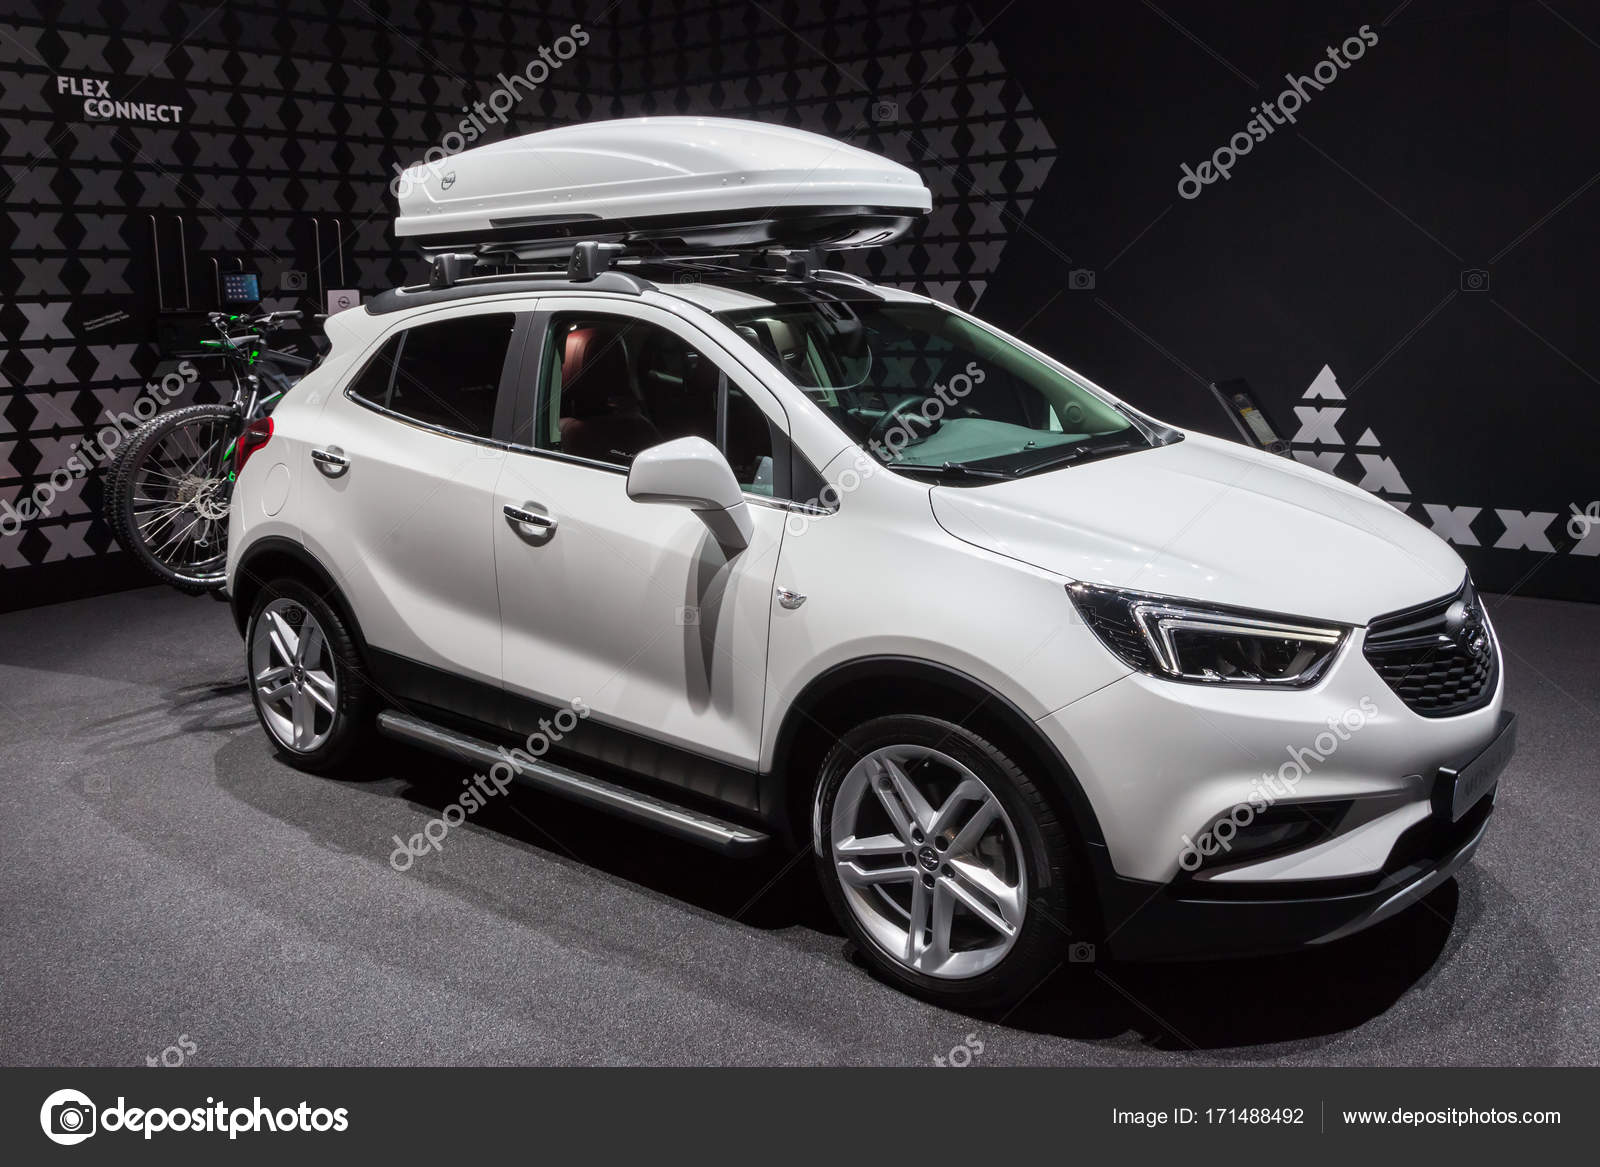 opel mokka x stock editorial photo philipus 171488492. Black Bedroom Furniture Sets. Home Design Ideas